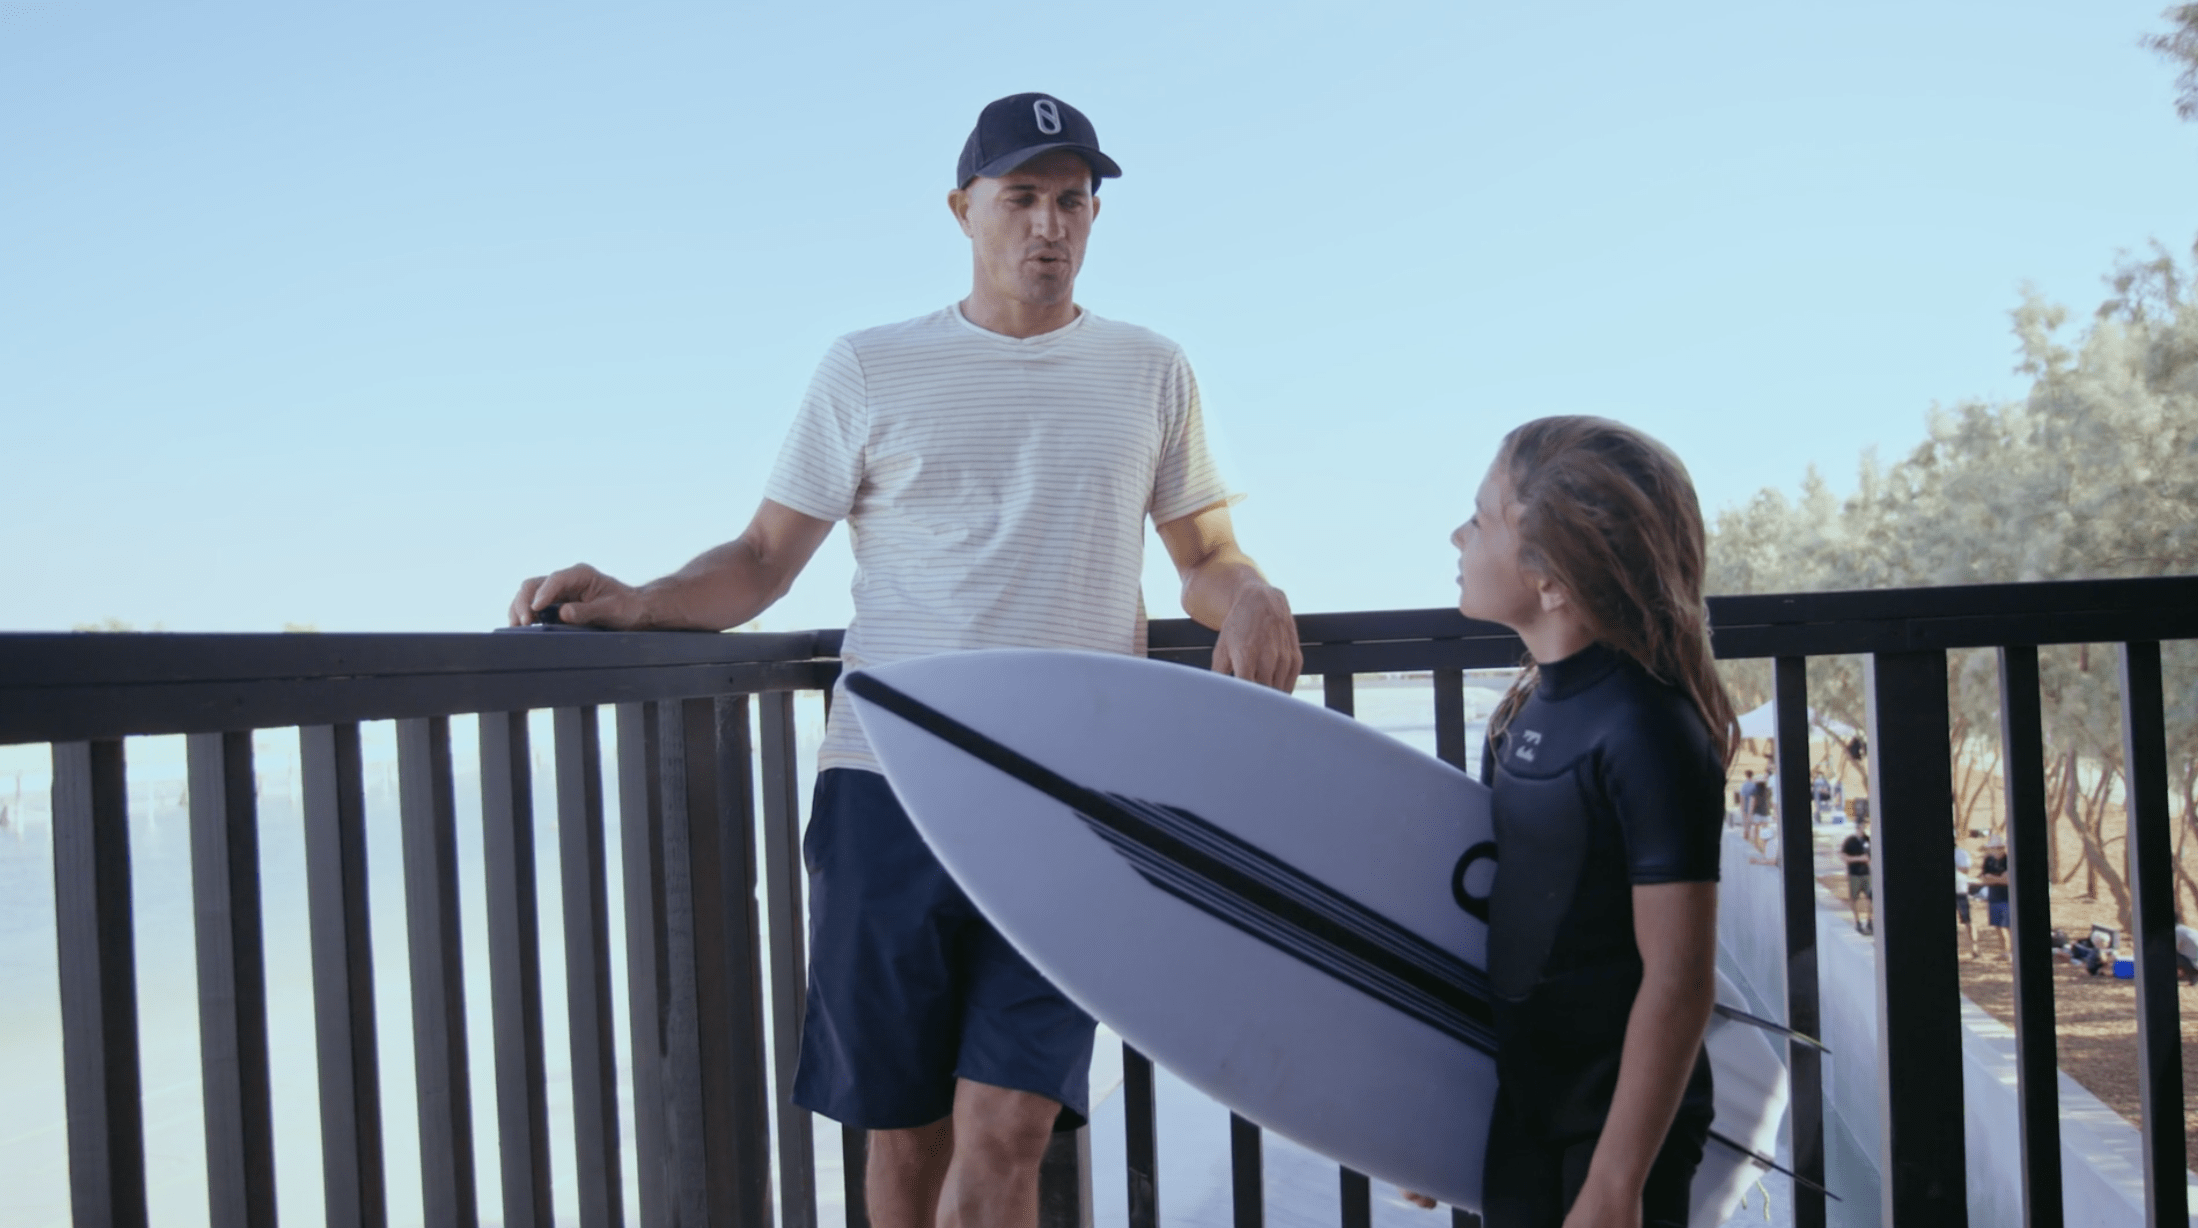 Surf Ranch Sunshine Coast Proposal: Kelly Slater Wave Company, Consolidated Properties Group & Hutchinson Builders Team Up